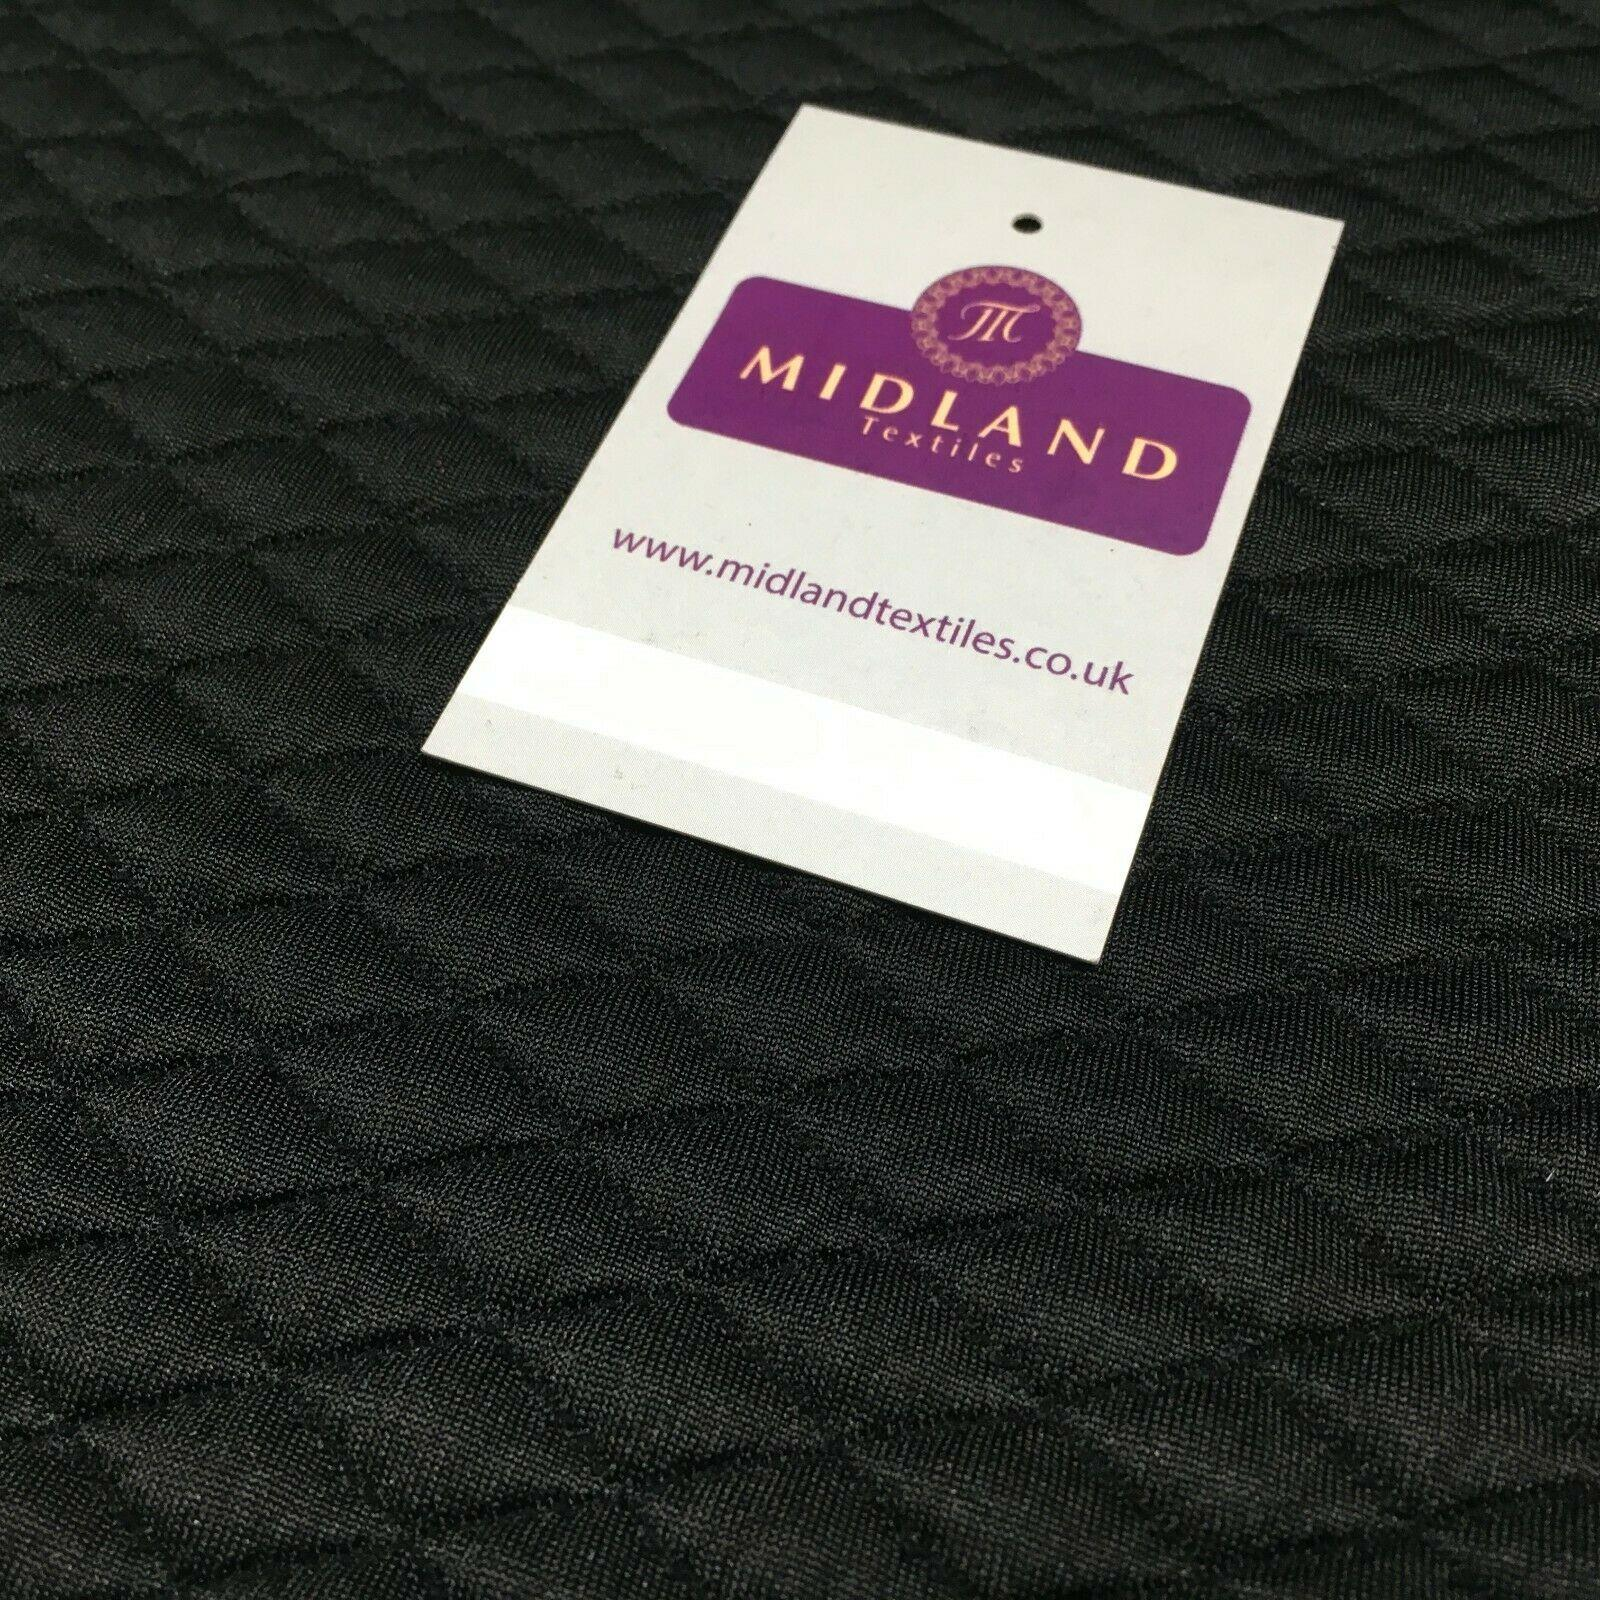 Black Quilted Diamond shaped Jersey dress fabric 147 cm M720-67 Mtex